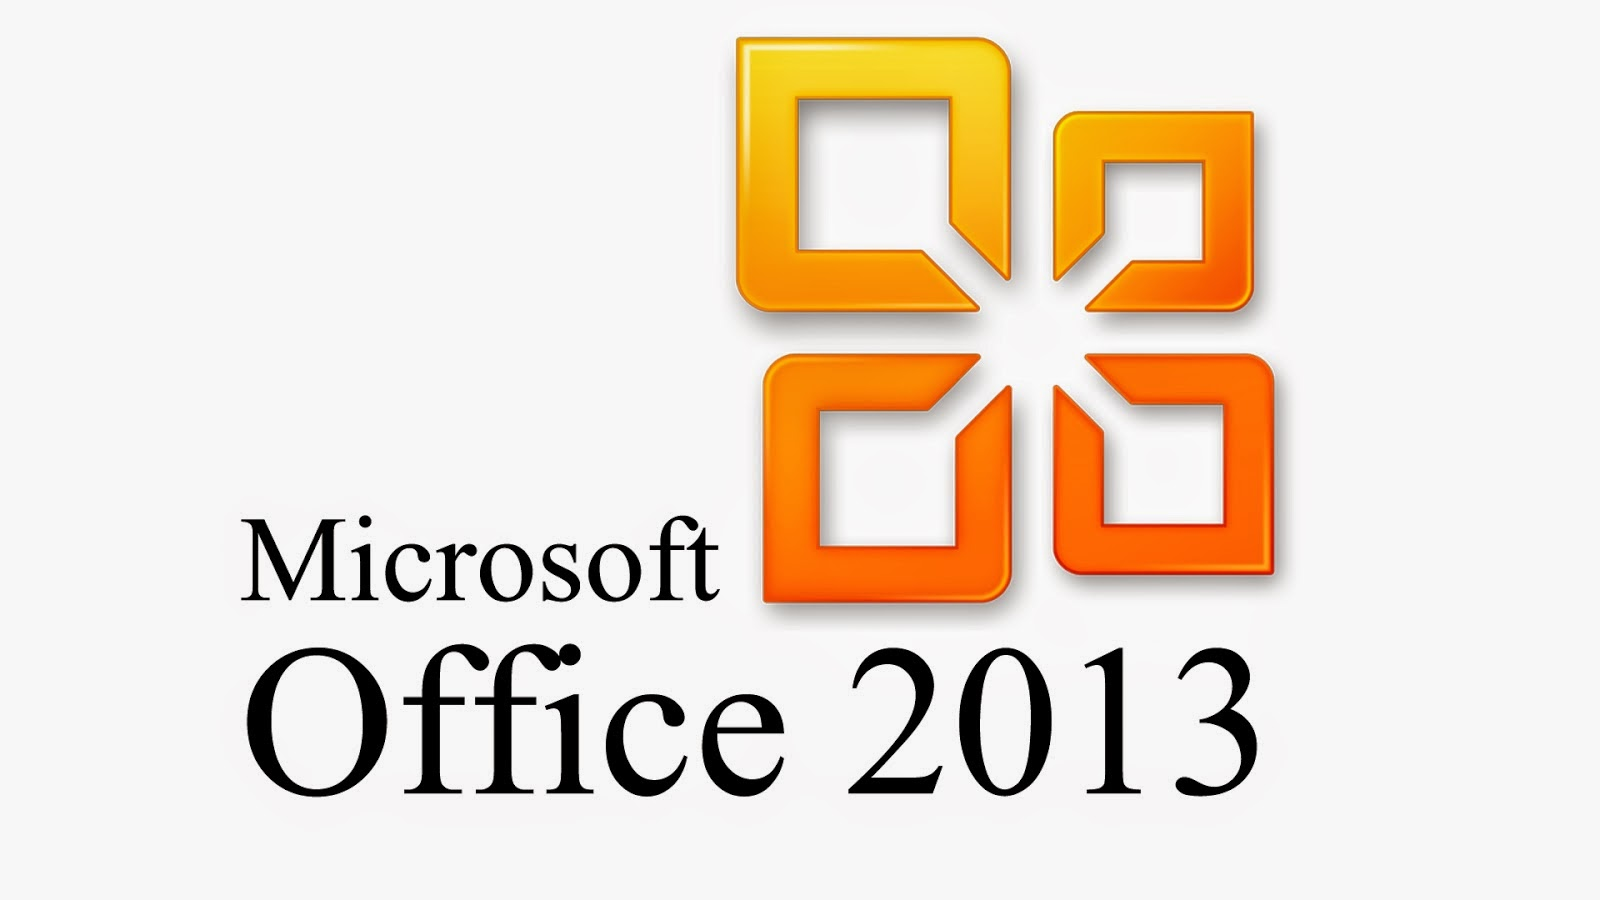 microsoft office 2013 free download for windows 8.1 64 bit